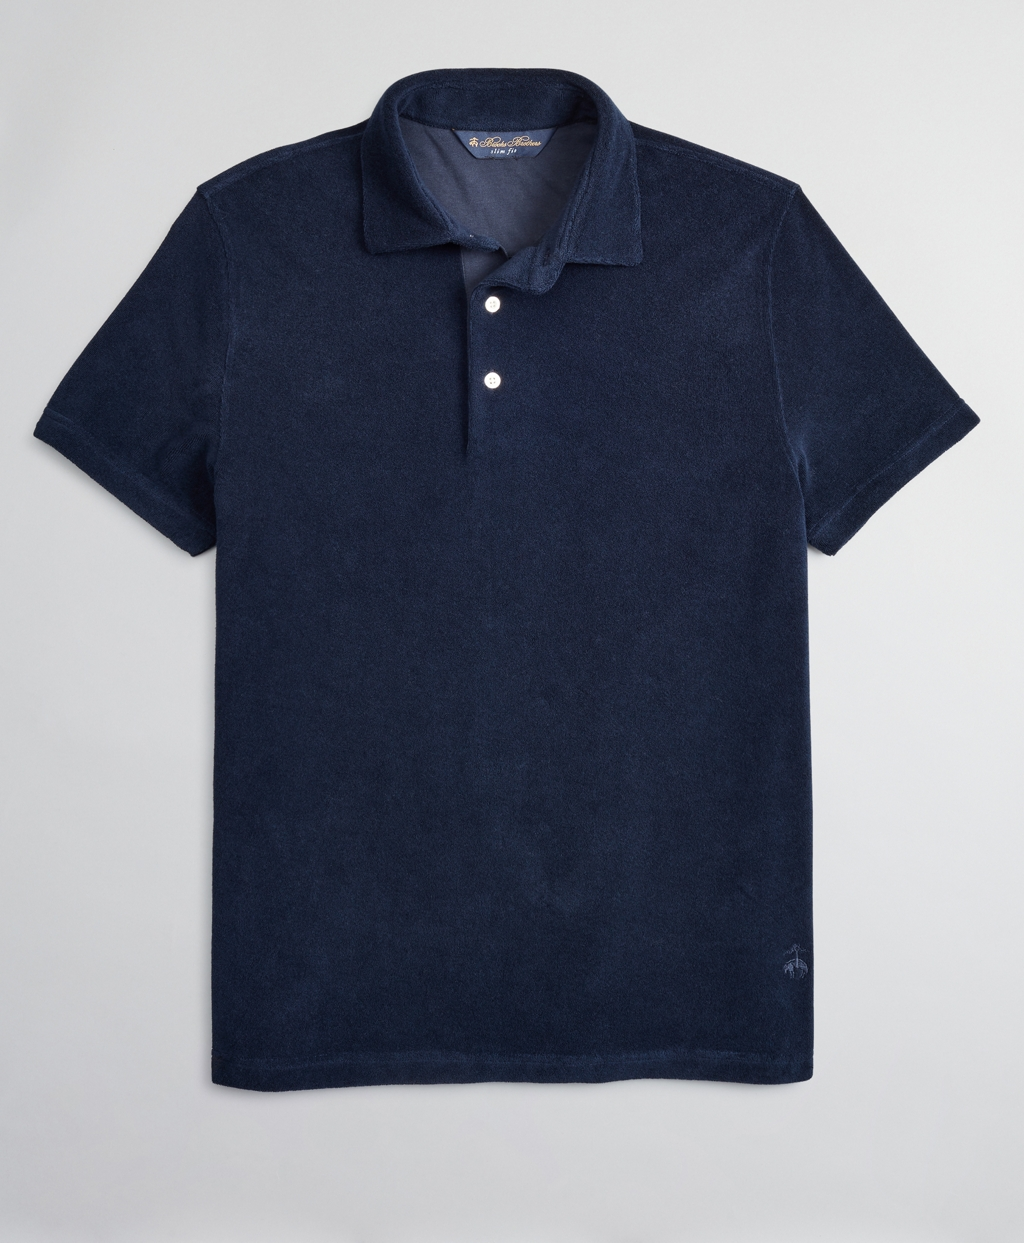 Mens Vintage Shirts – Retro Shirts Brooks Brothers Mens French Terry Polo Shirt $62.65 AT vintagedancer.com